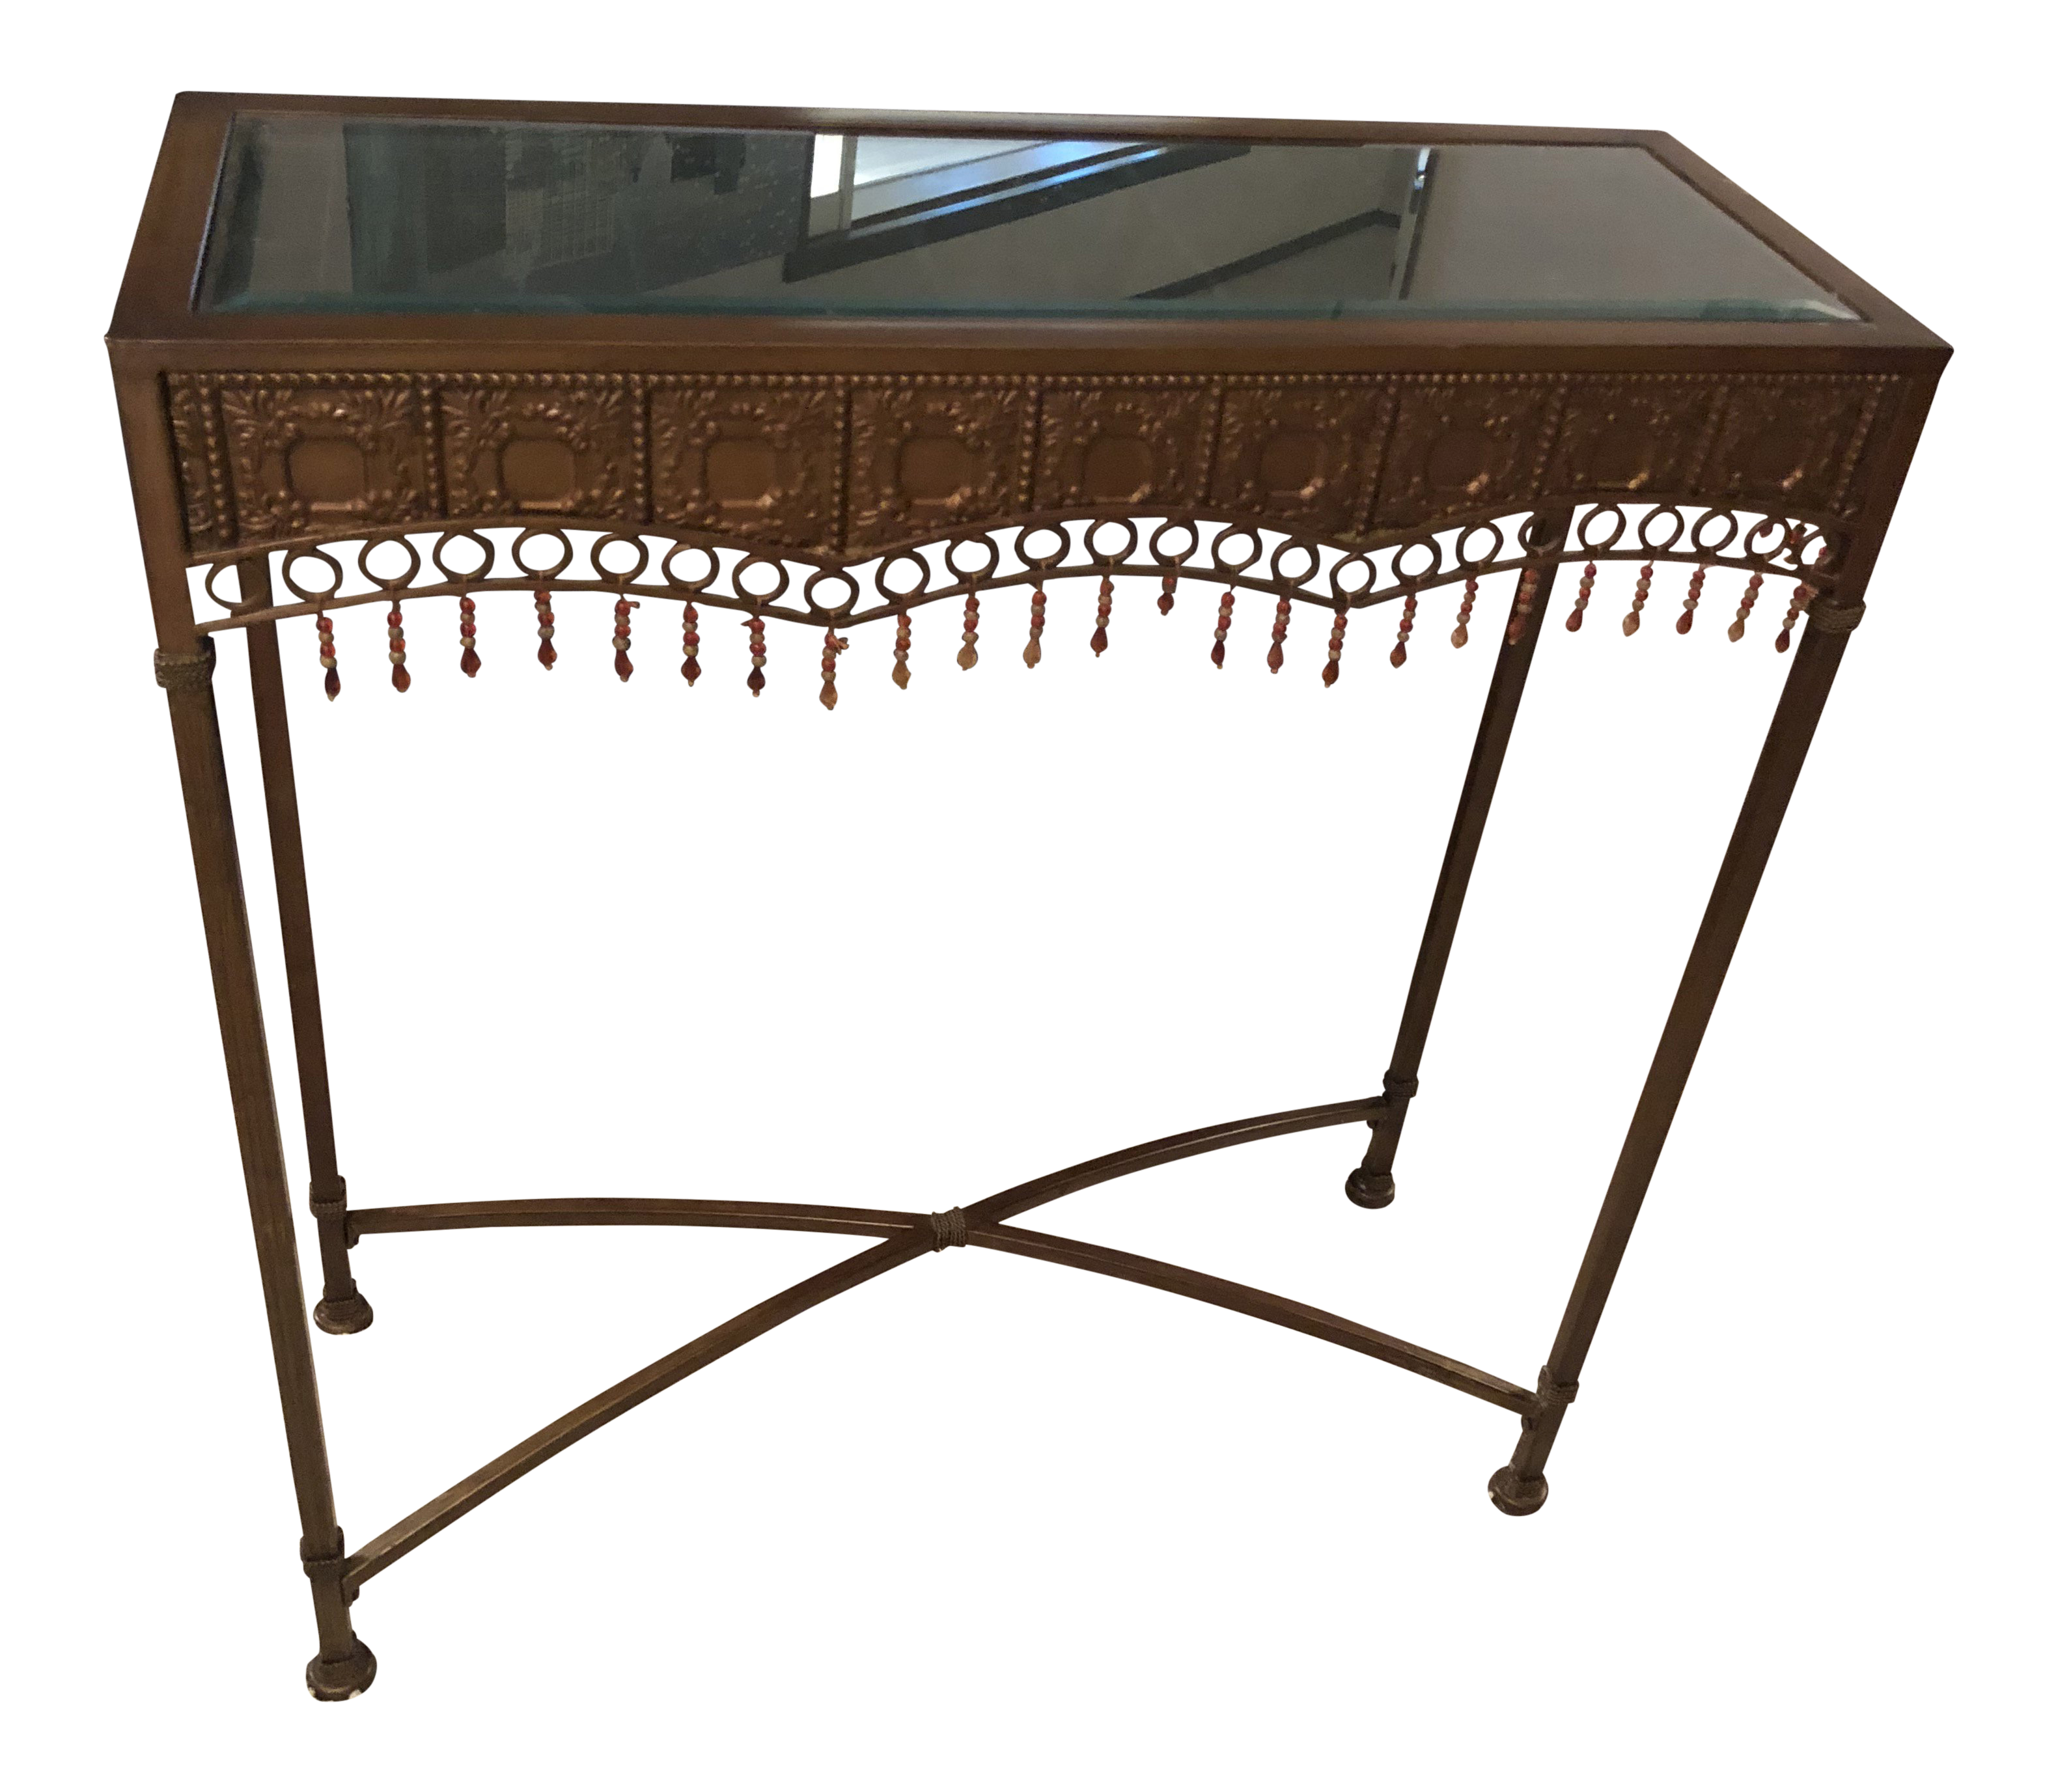 bombay bohemian hammered bronze copper metal accent table chairish high huge wall clock white oval coffee rustic wood and end tables small triangular side changing mattress pier